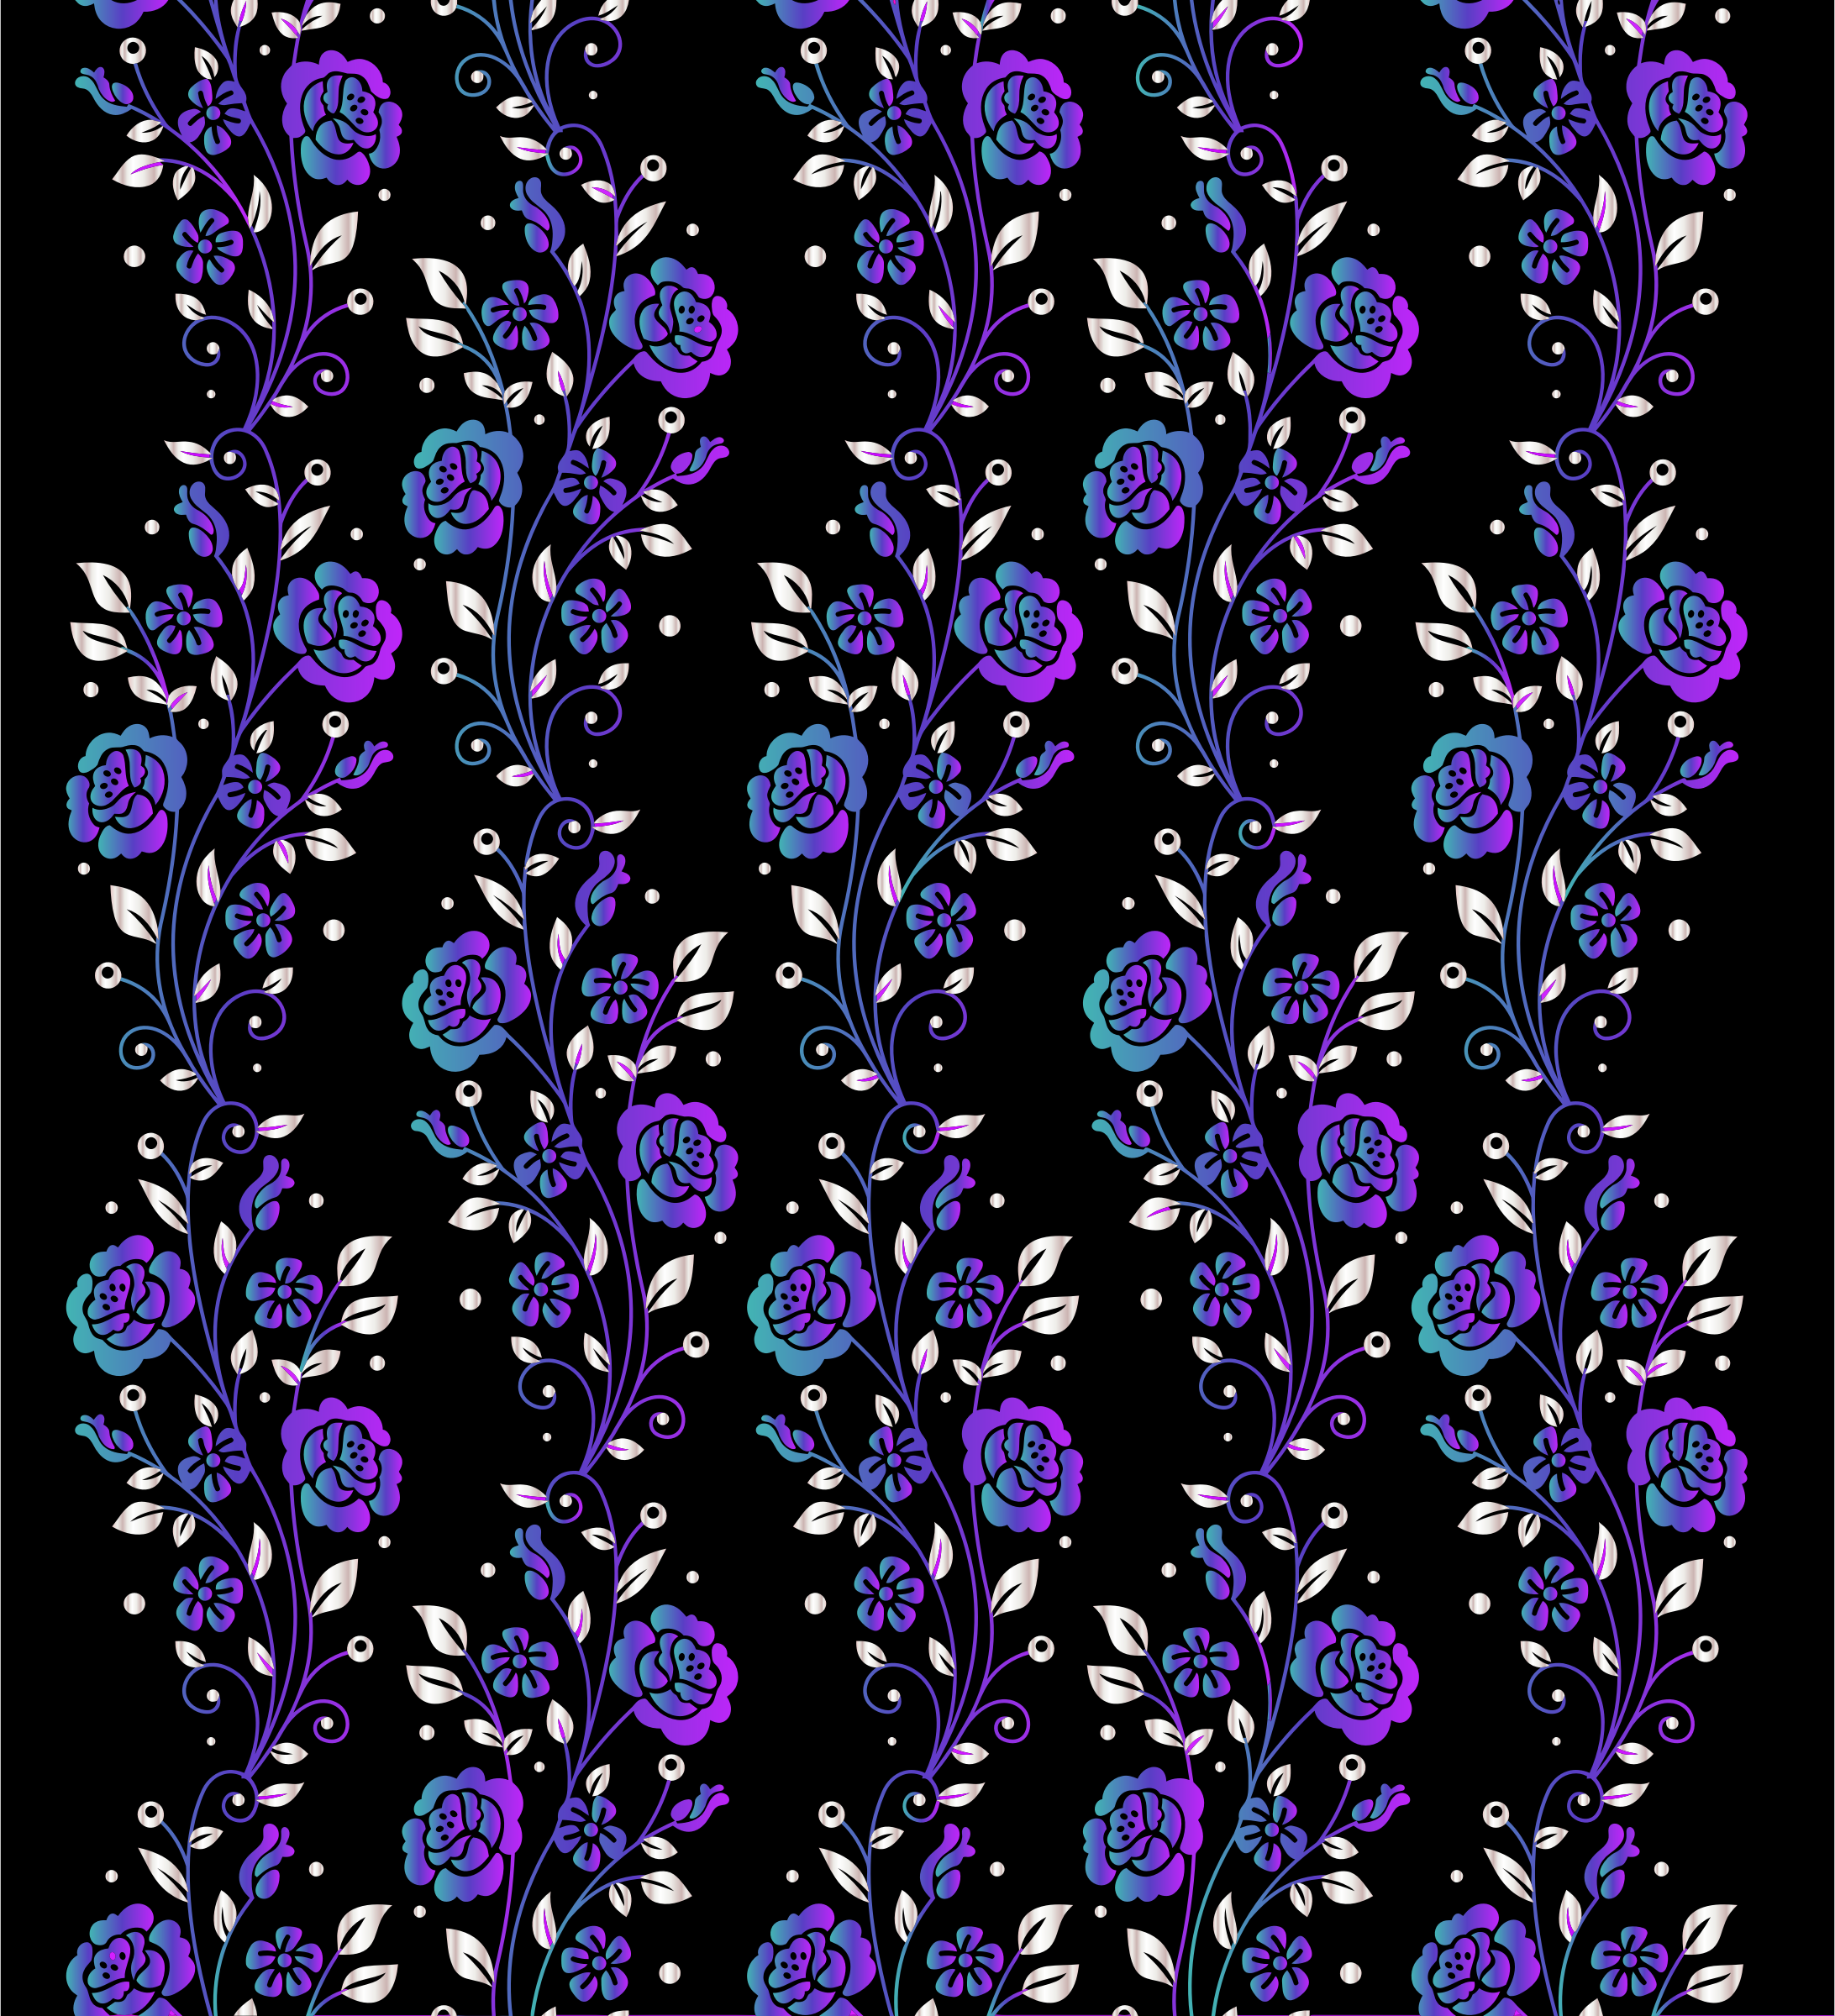 Vertical Floral Pattern Modified 2 by GDJ